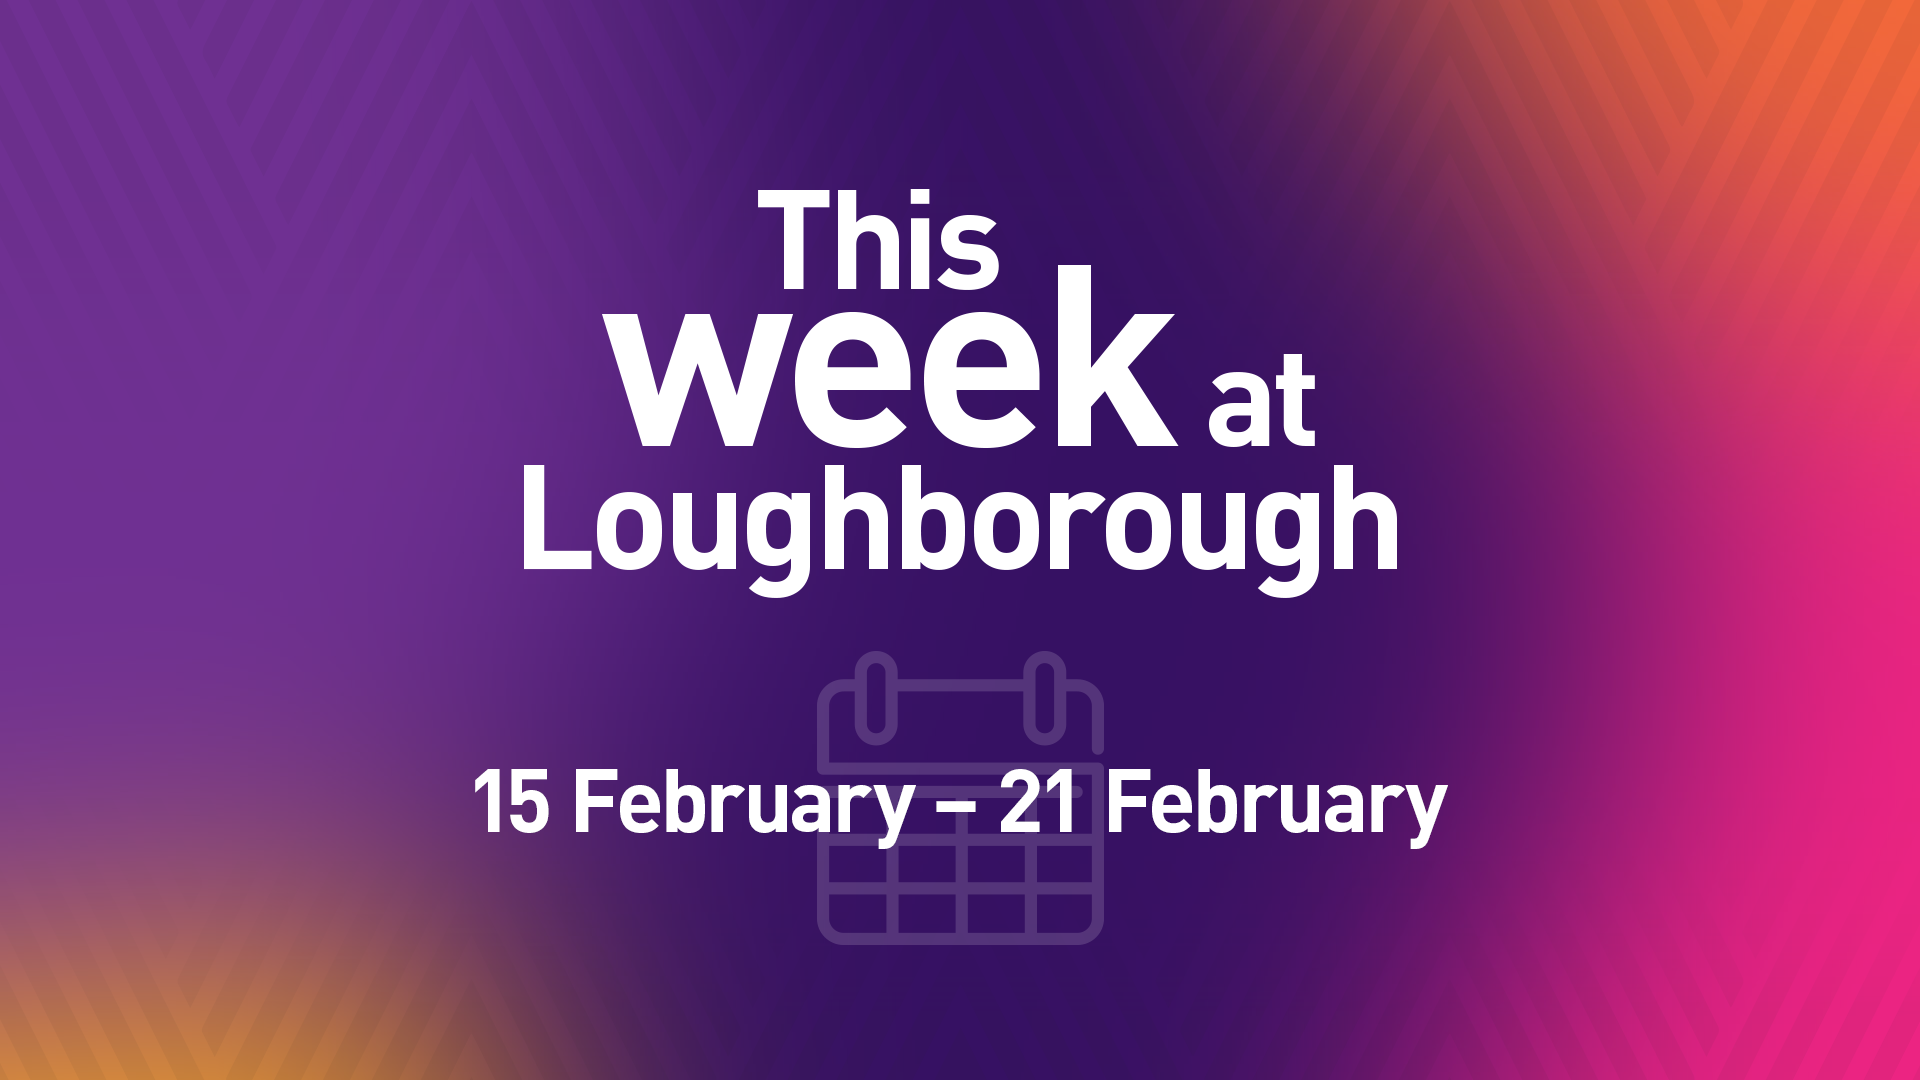 This Week at Loughborough | 15 February